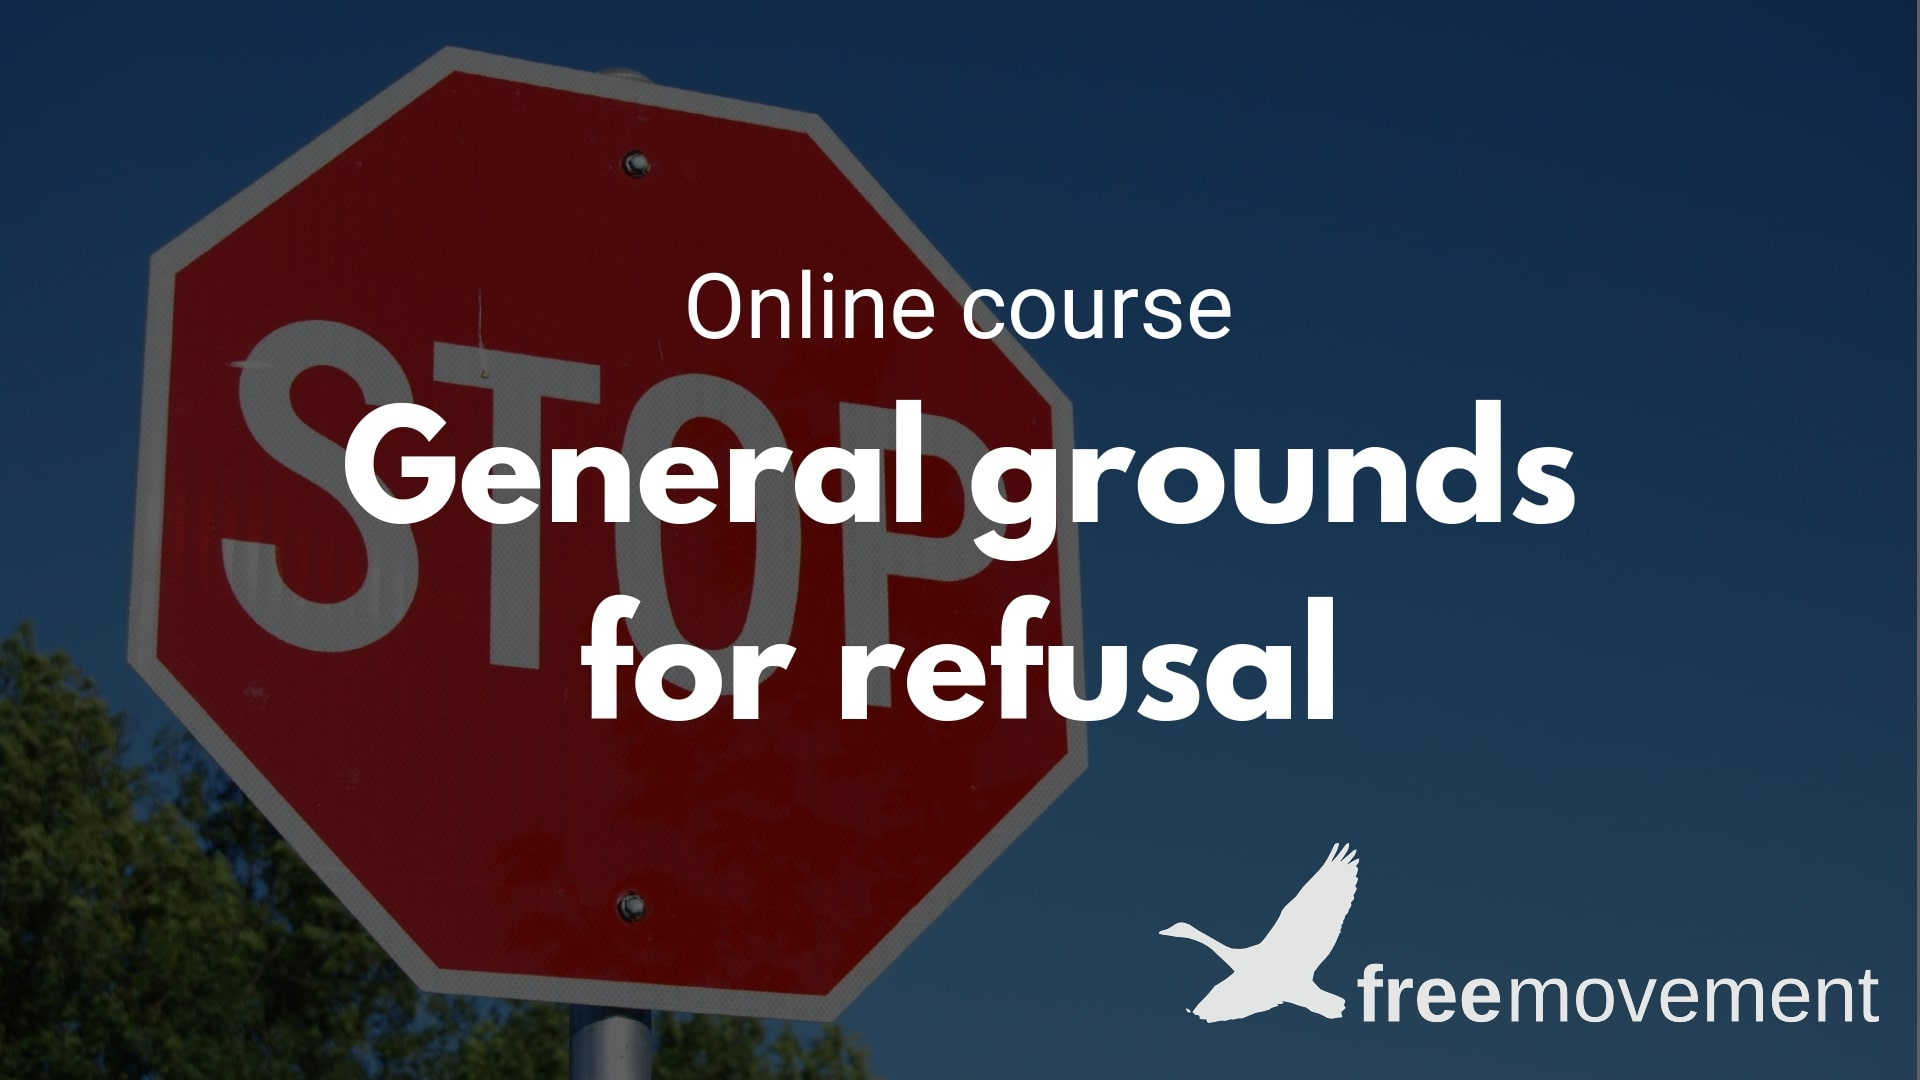 General grounds for refusal